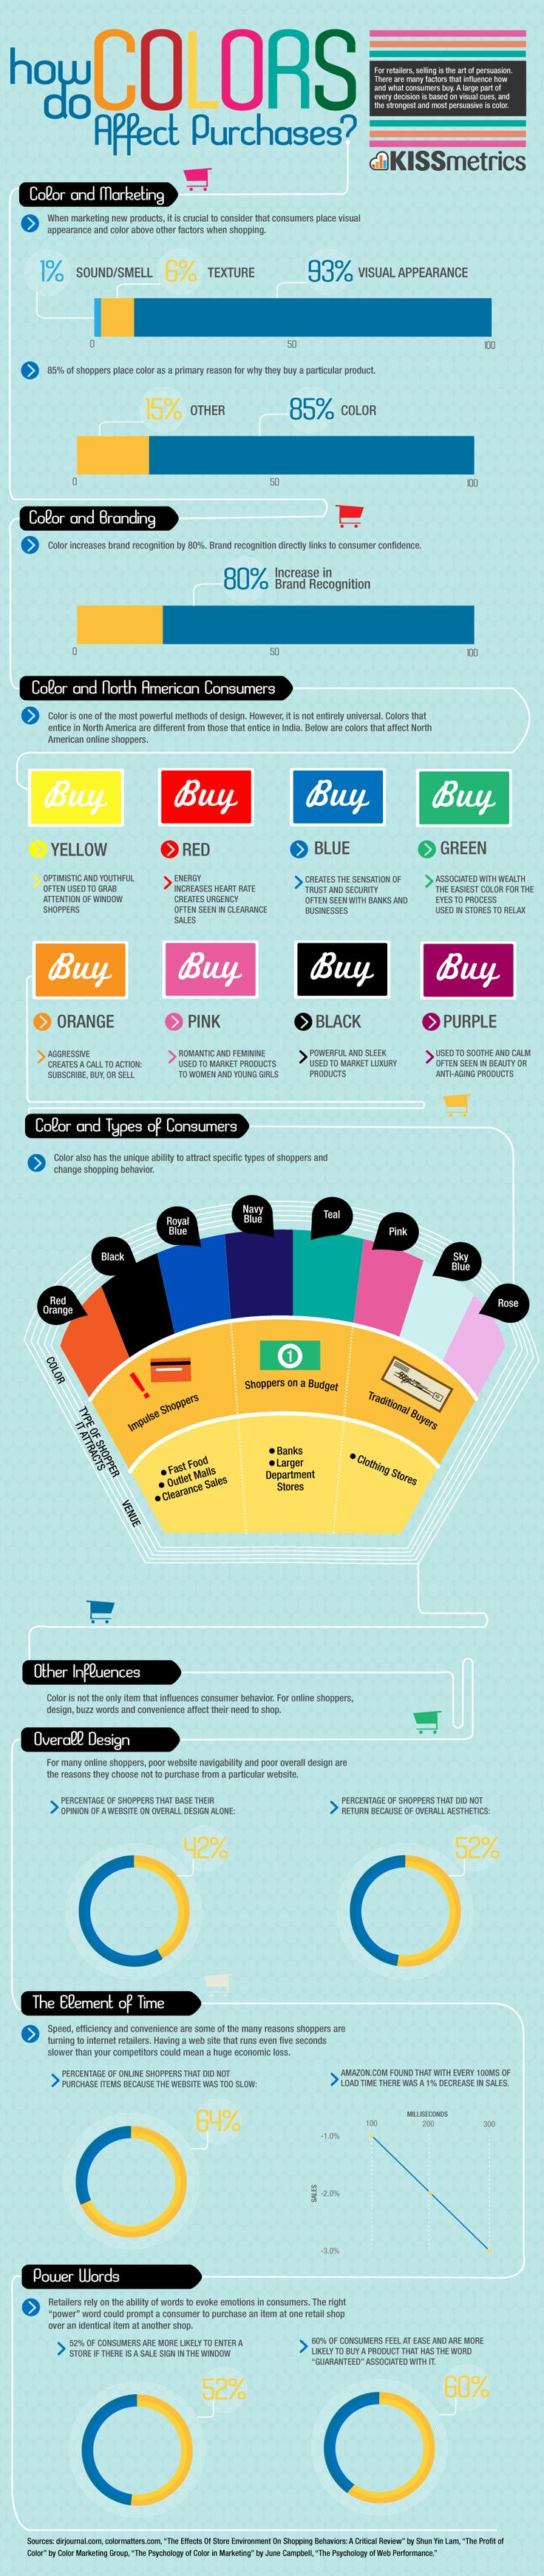 Color Psychology: How Do Colors Affect Purchases (Infographic) | iBrandStudio